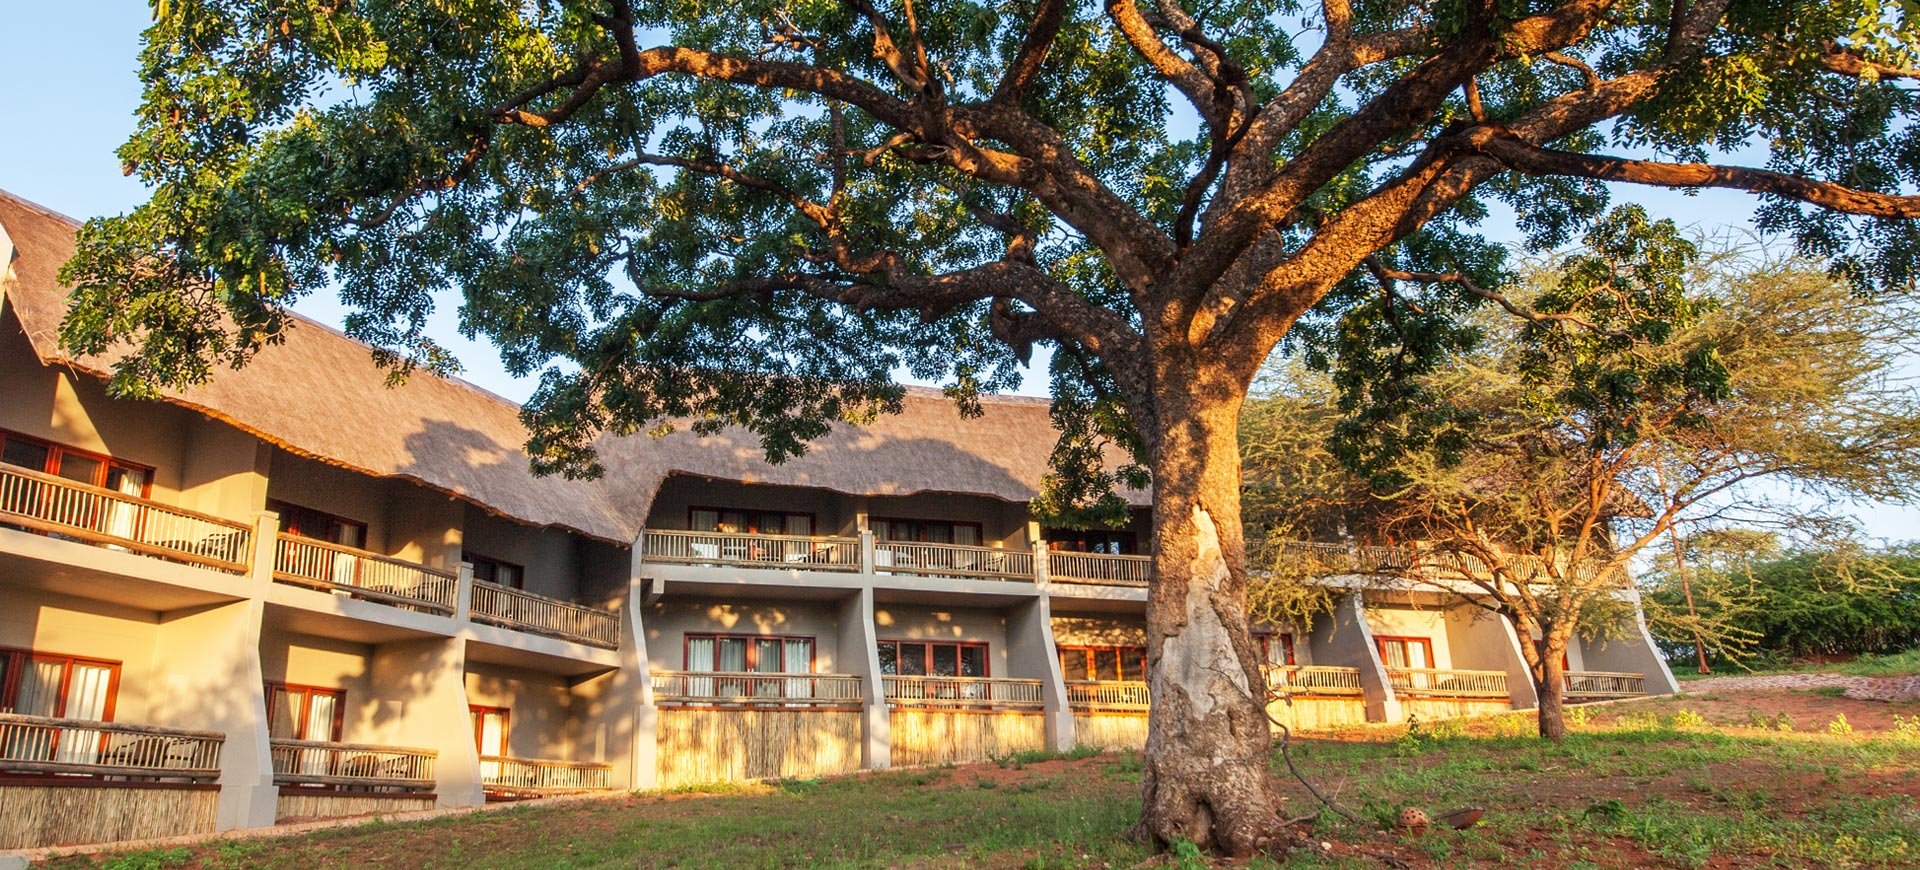 Lodge Chobe Bush